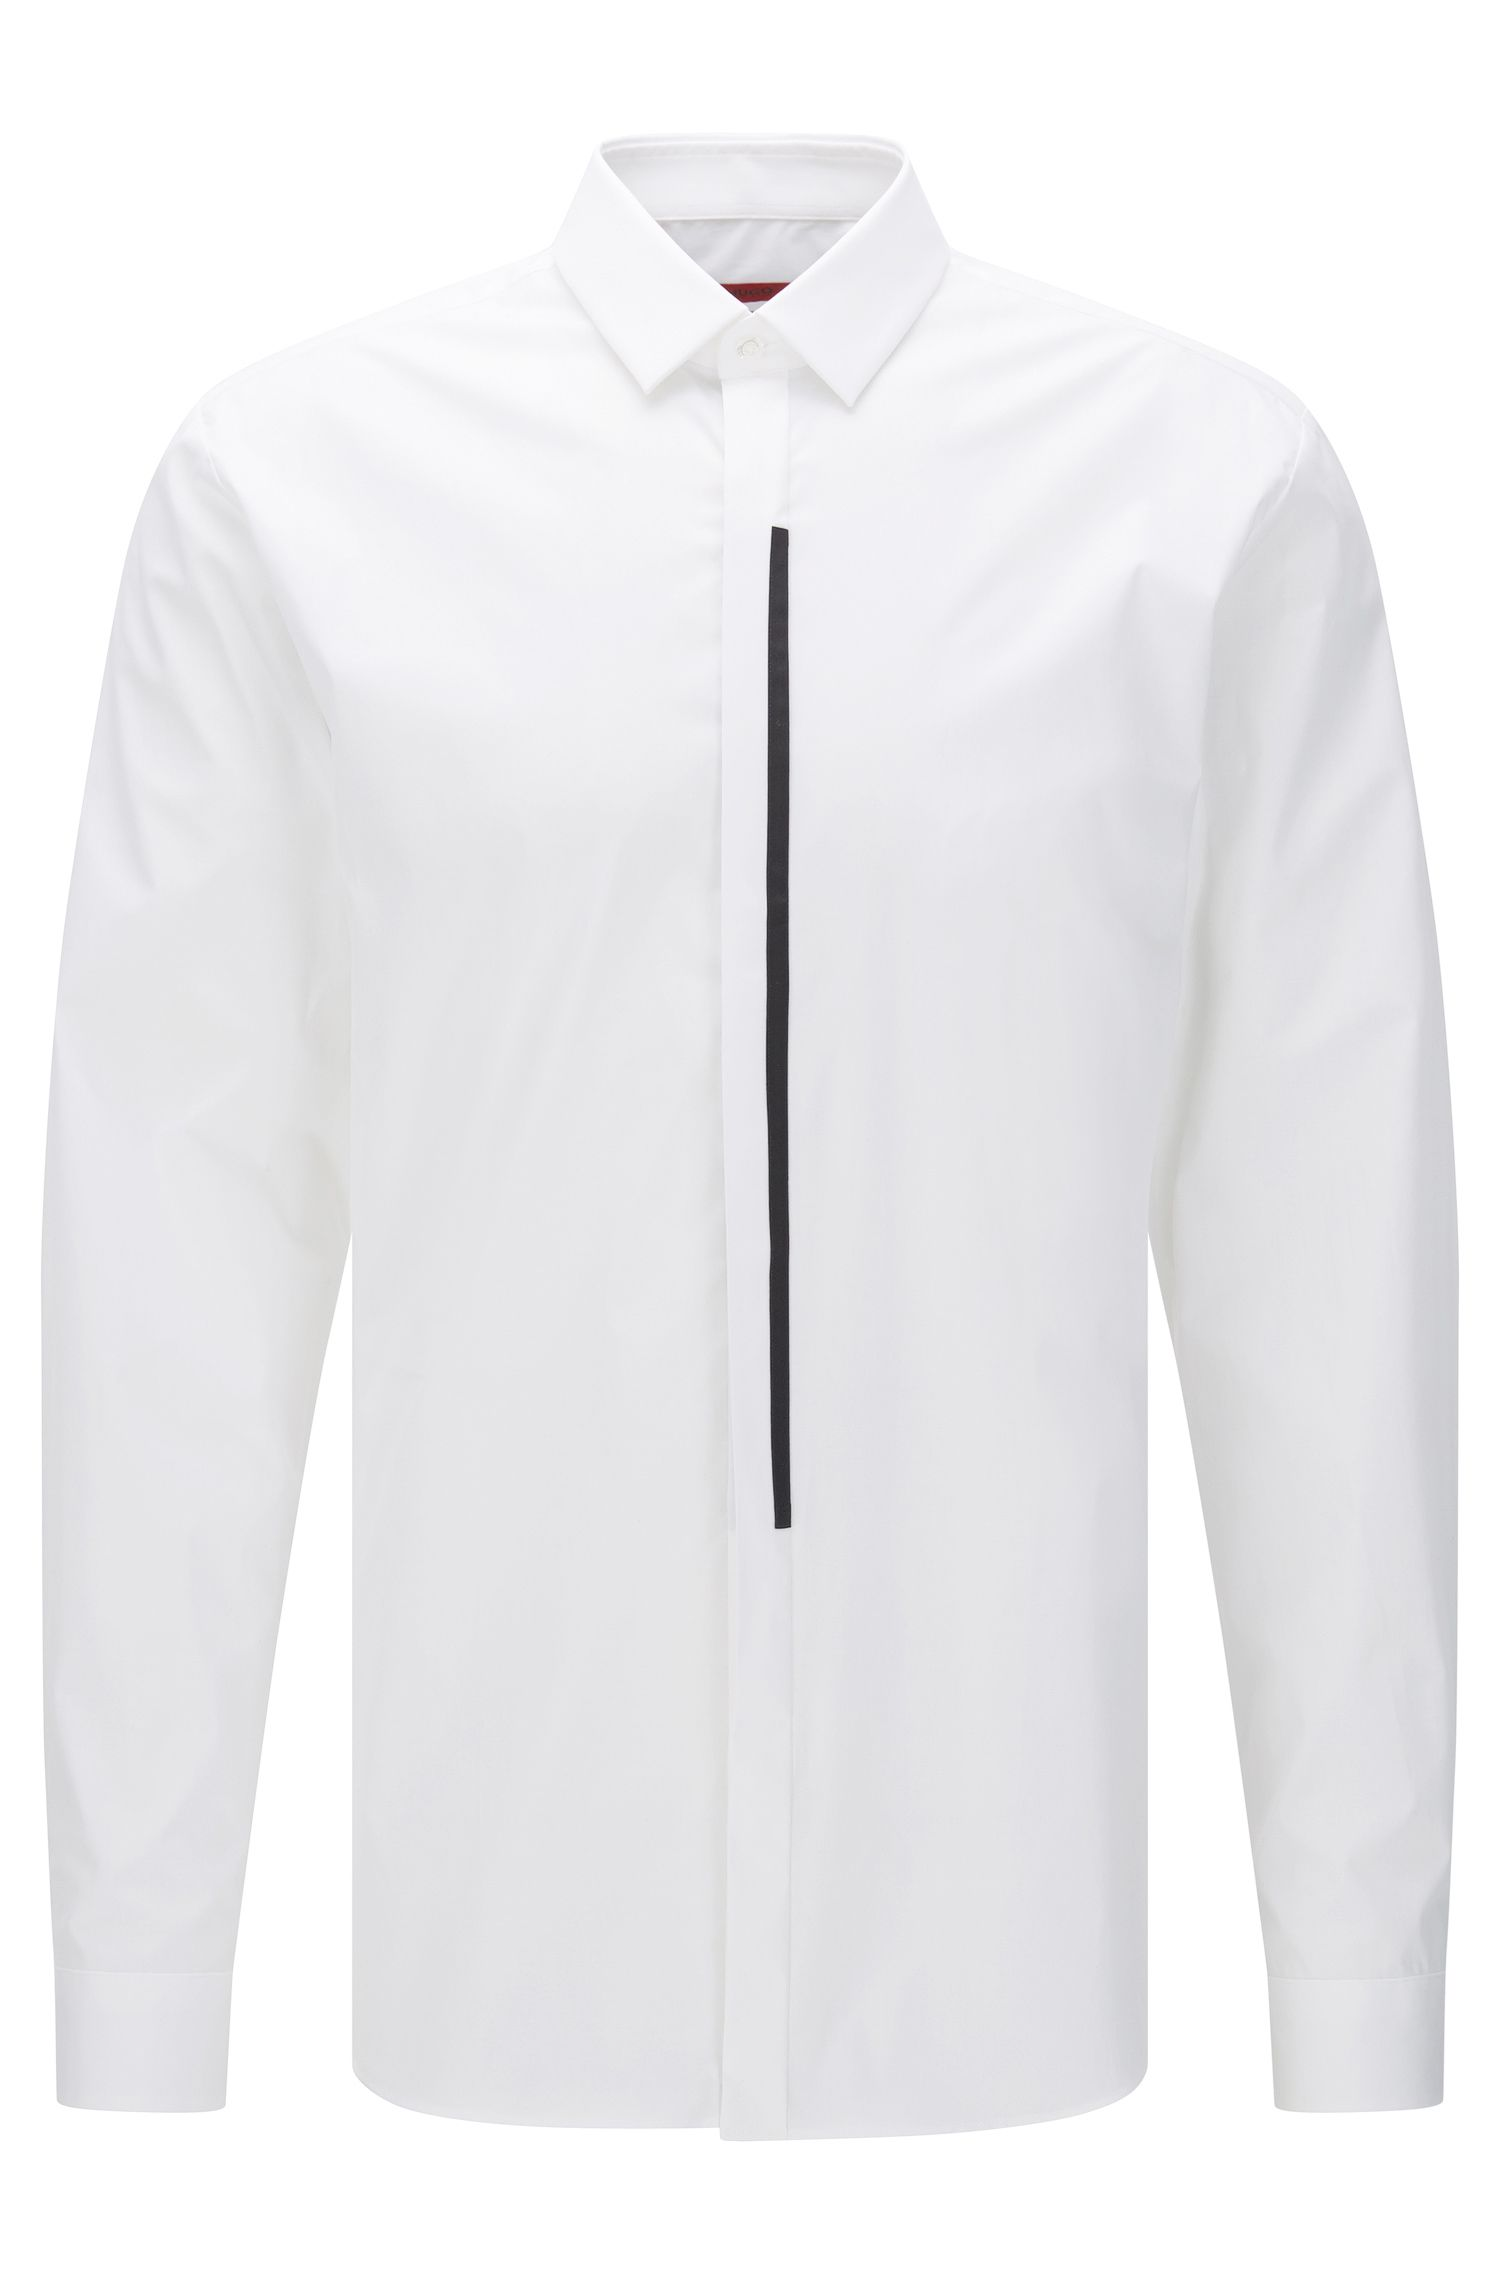 'Emac' | Extra Slim Fit, Stretch Cotton Button Down Shirt